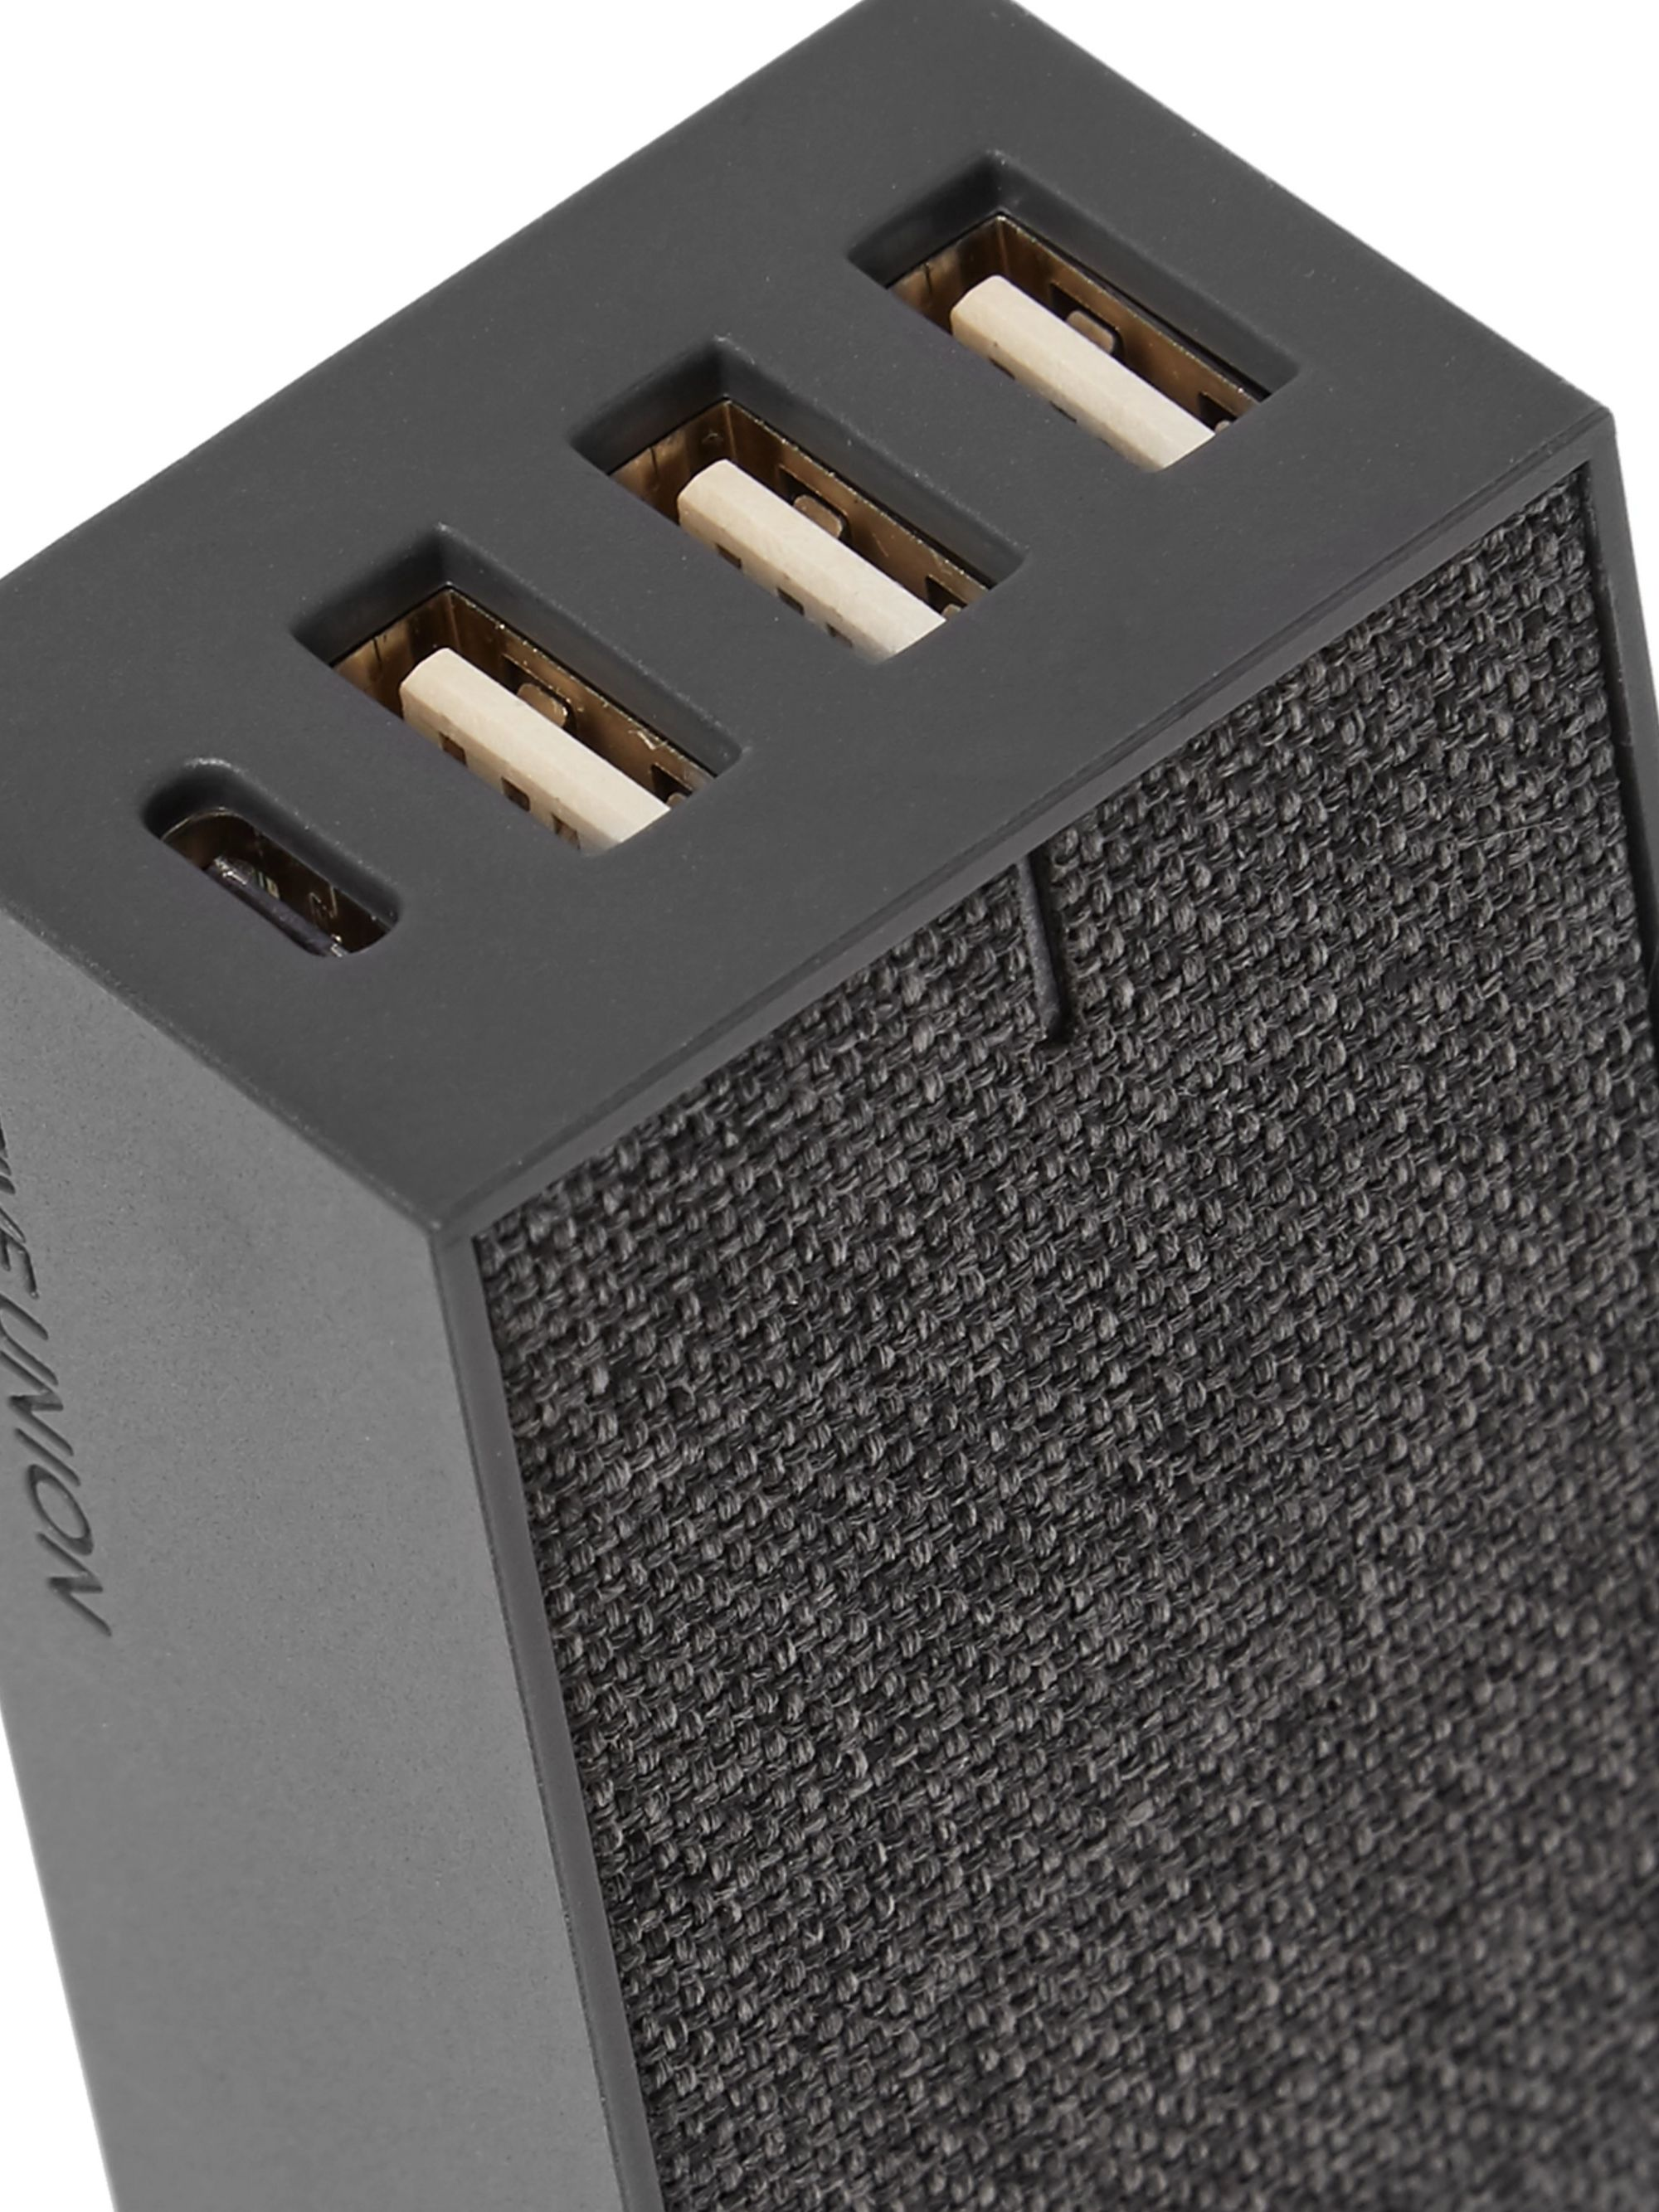 Native Union Smart 4 Charger